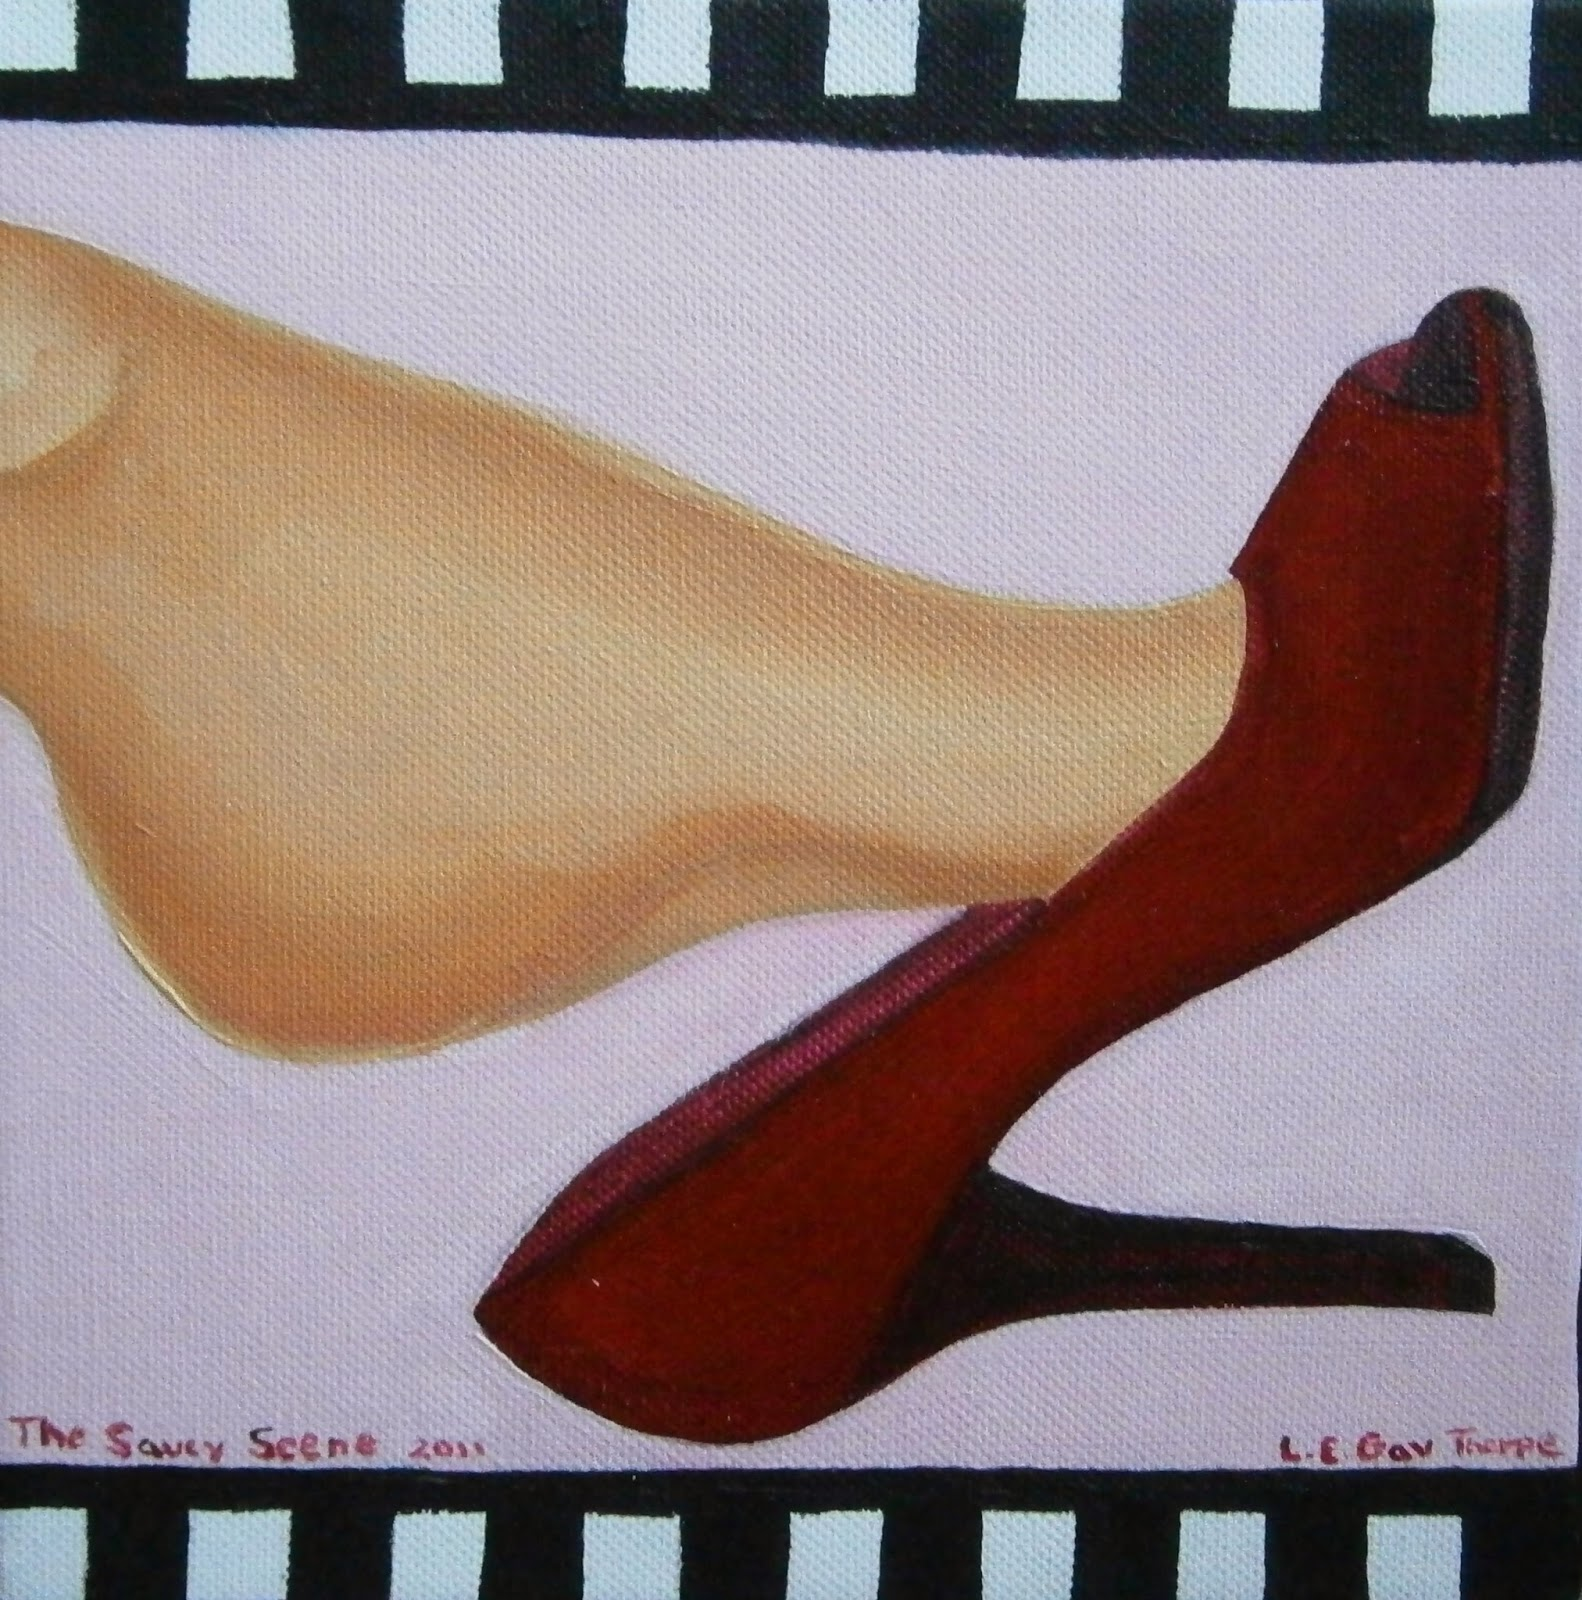 A woman dangling a red high heel off of her foot